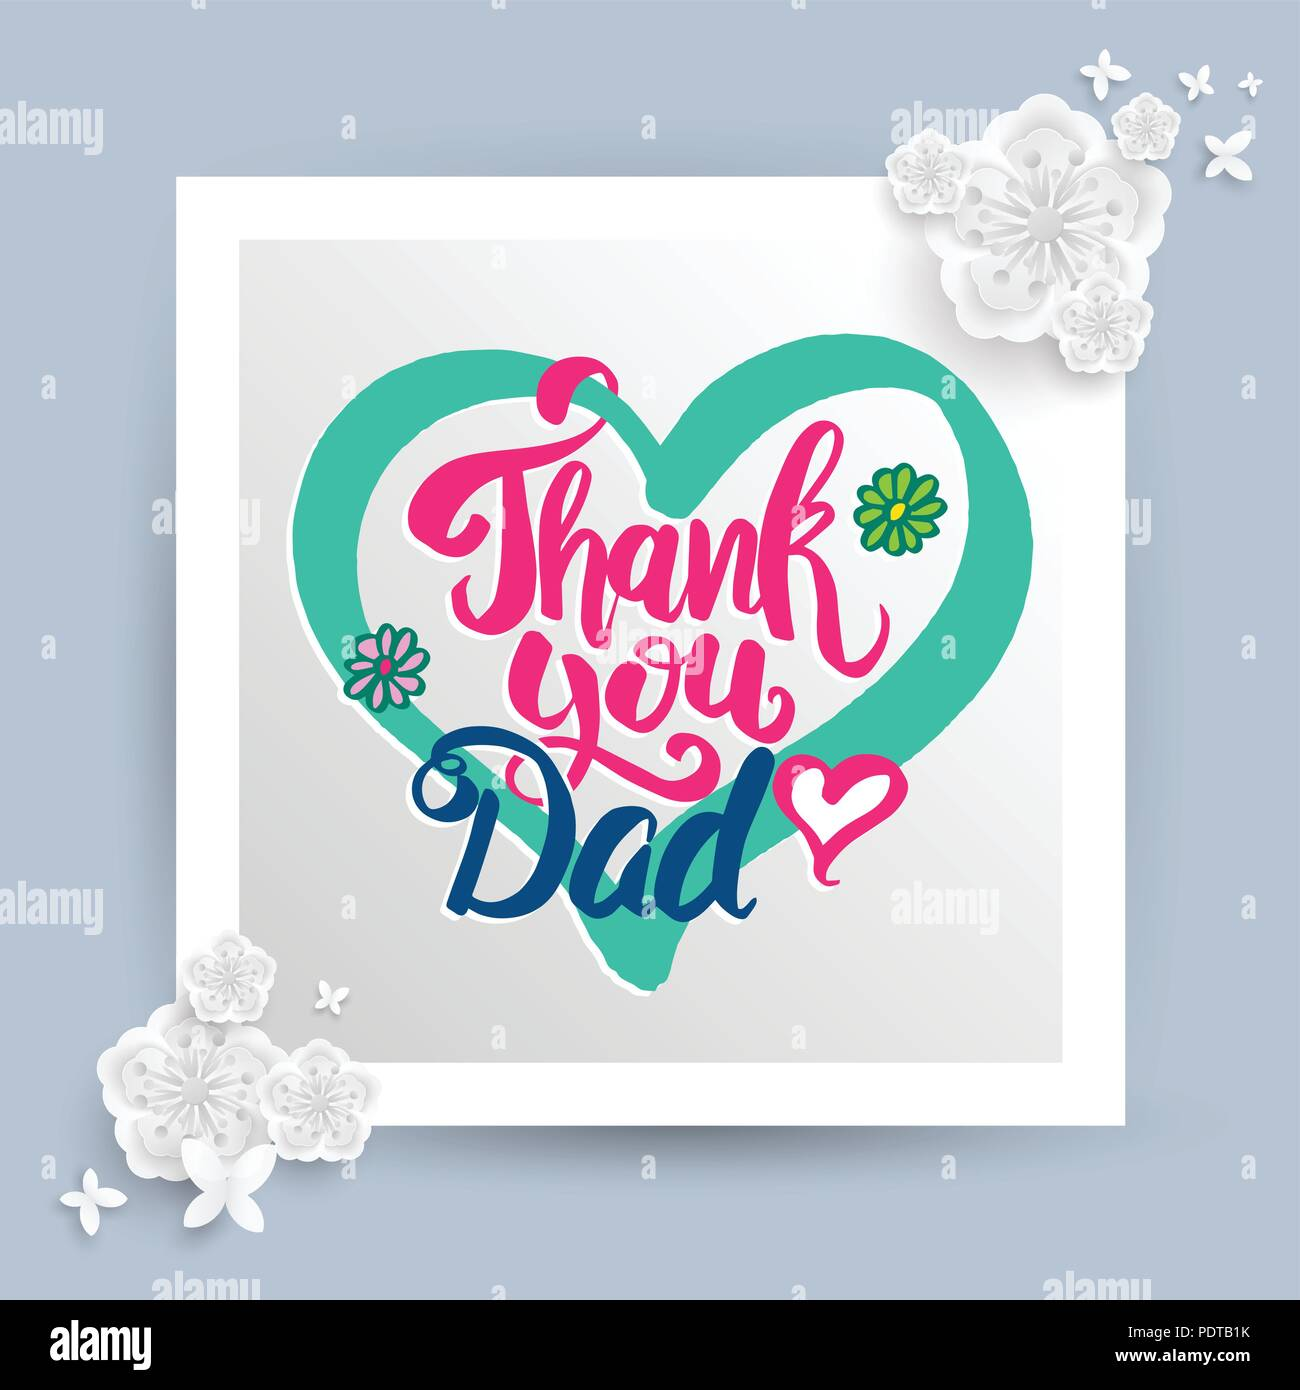 Thank You Dad Lettering For Father S Day Card Vector